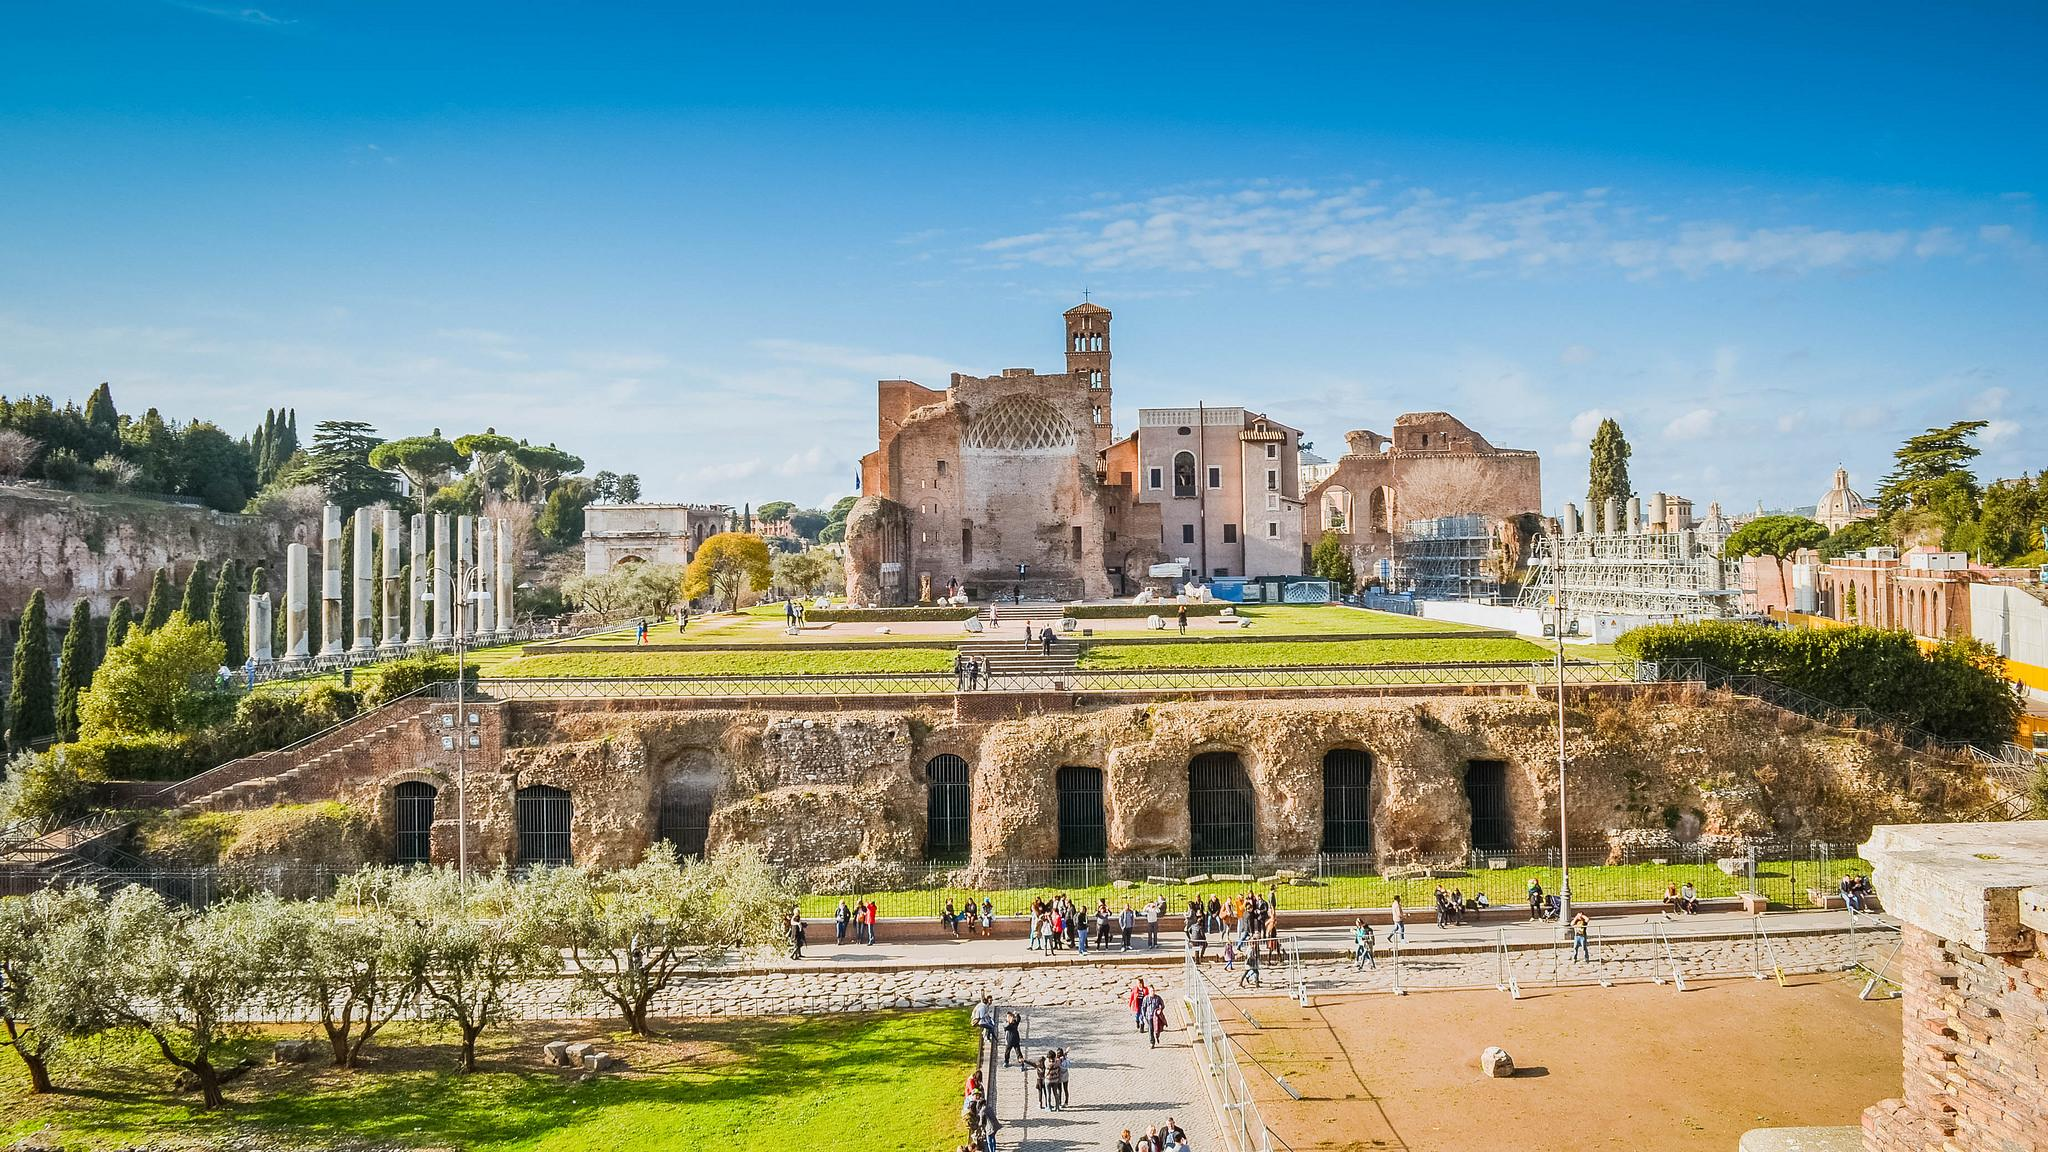 rome italy in march weather 2016 - photo#31